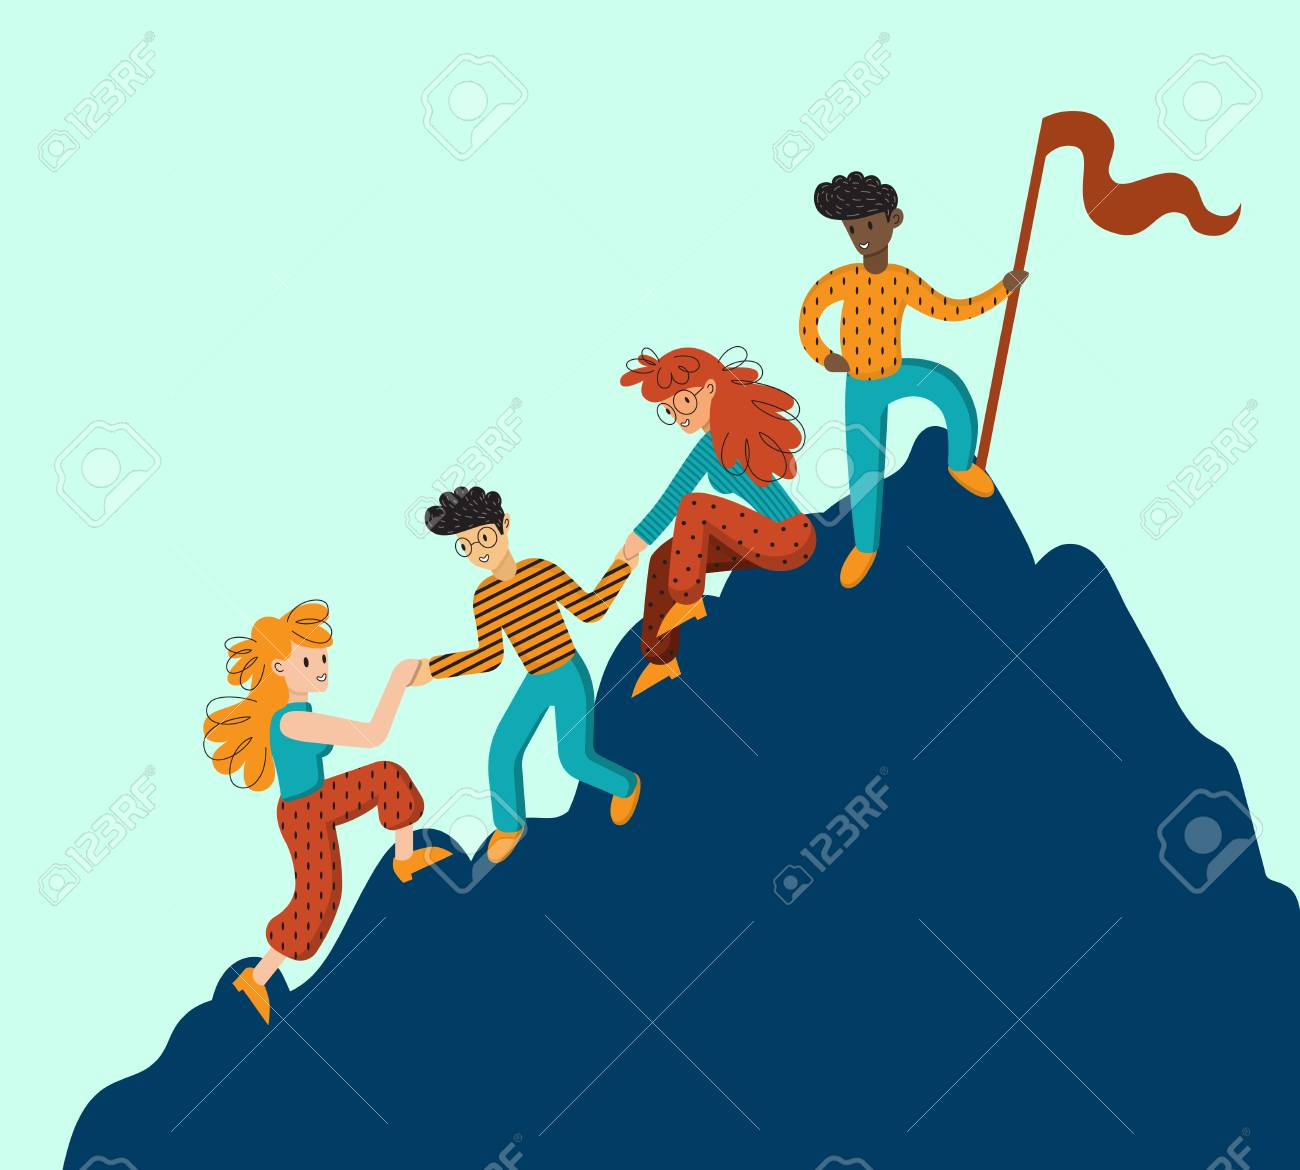 Group of climbers helping each other. Concept of teamwork. International business people in mountains. Leader on the top. Vector illustration in flat cartoon style. - 114495148